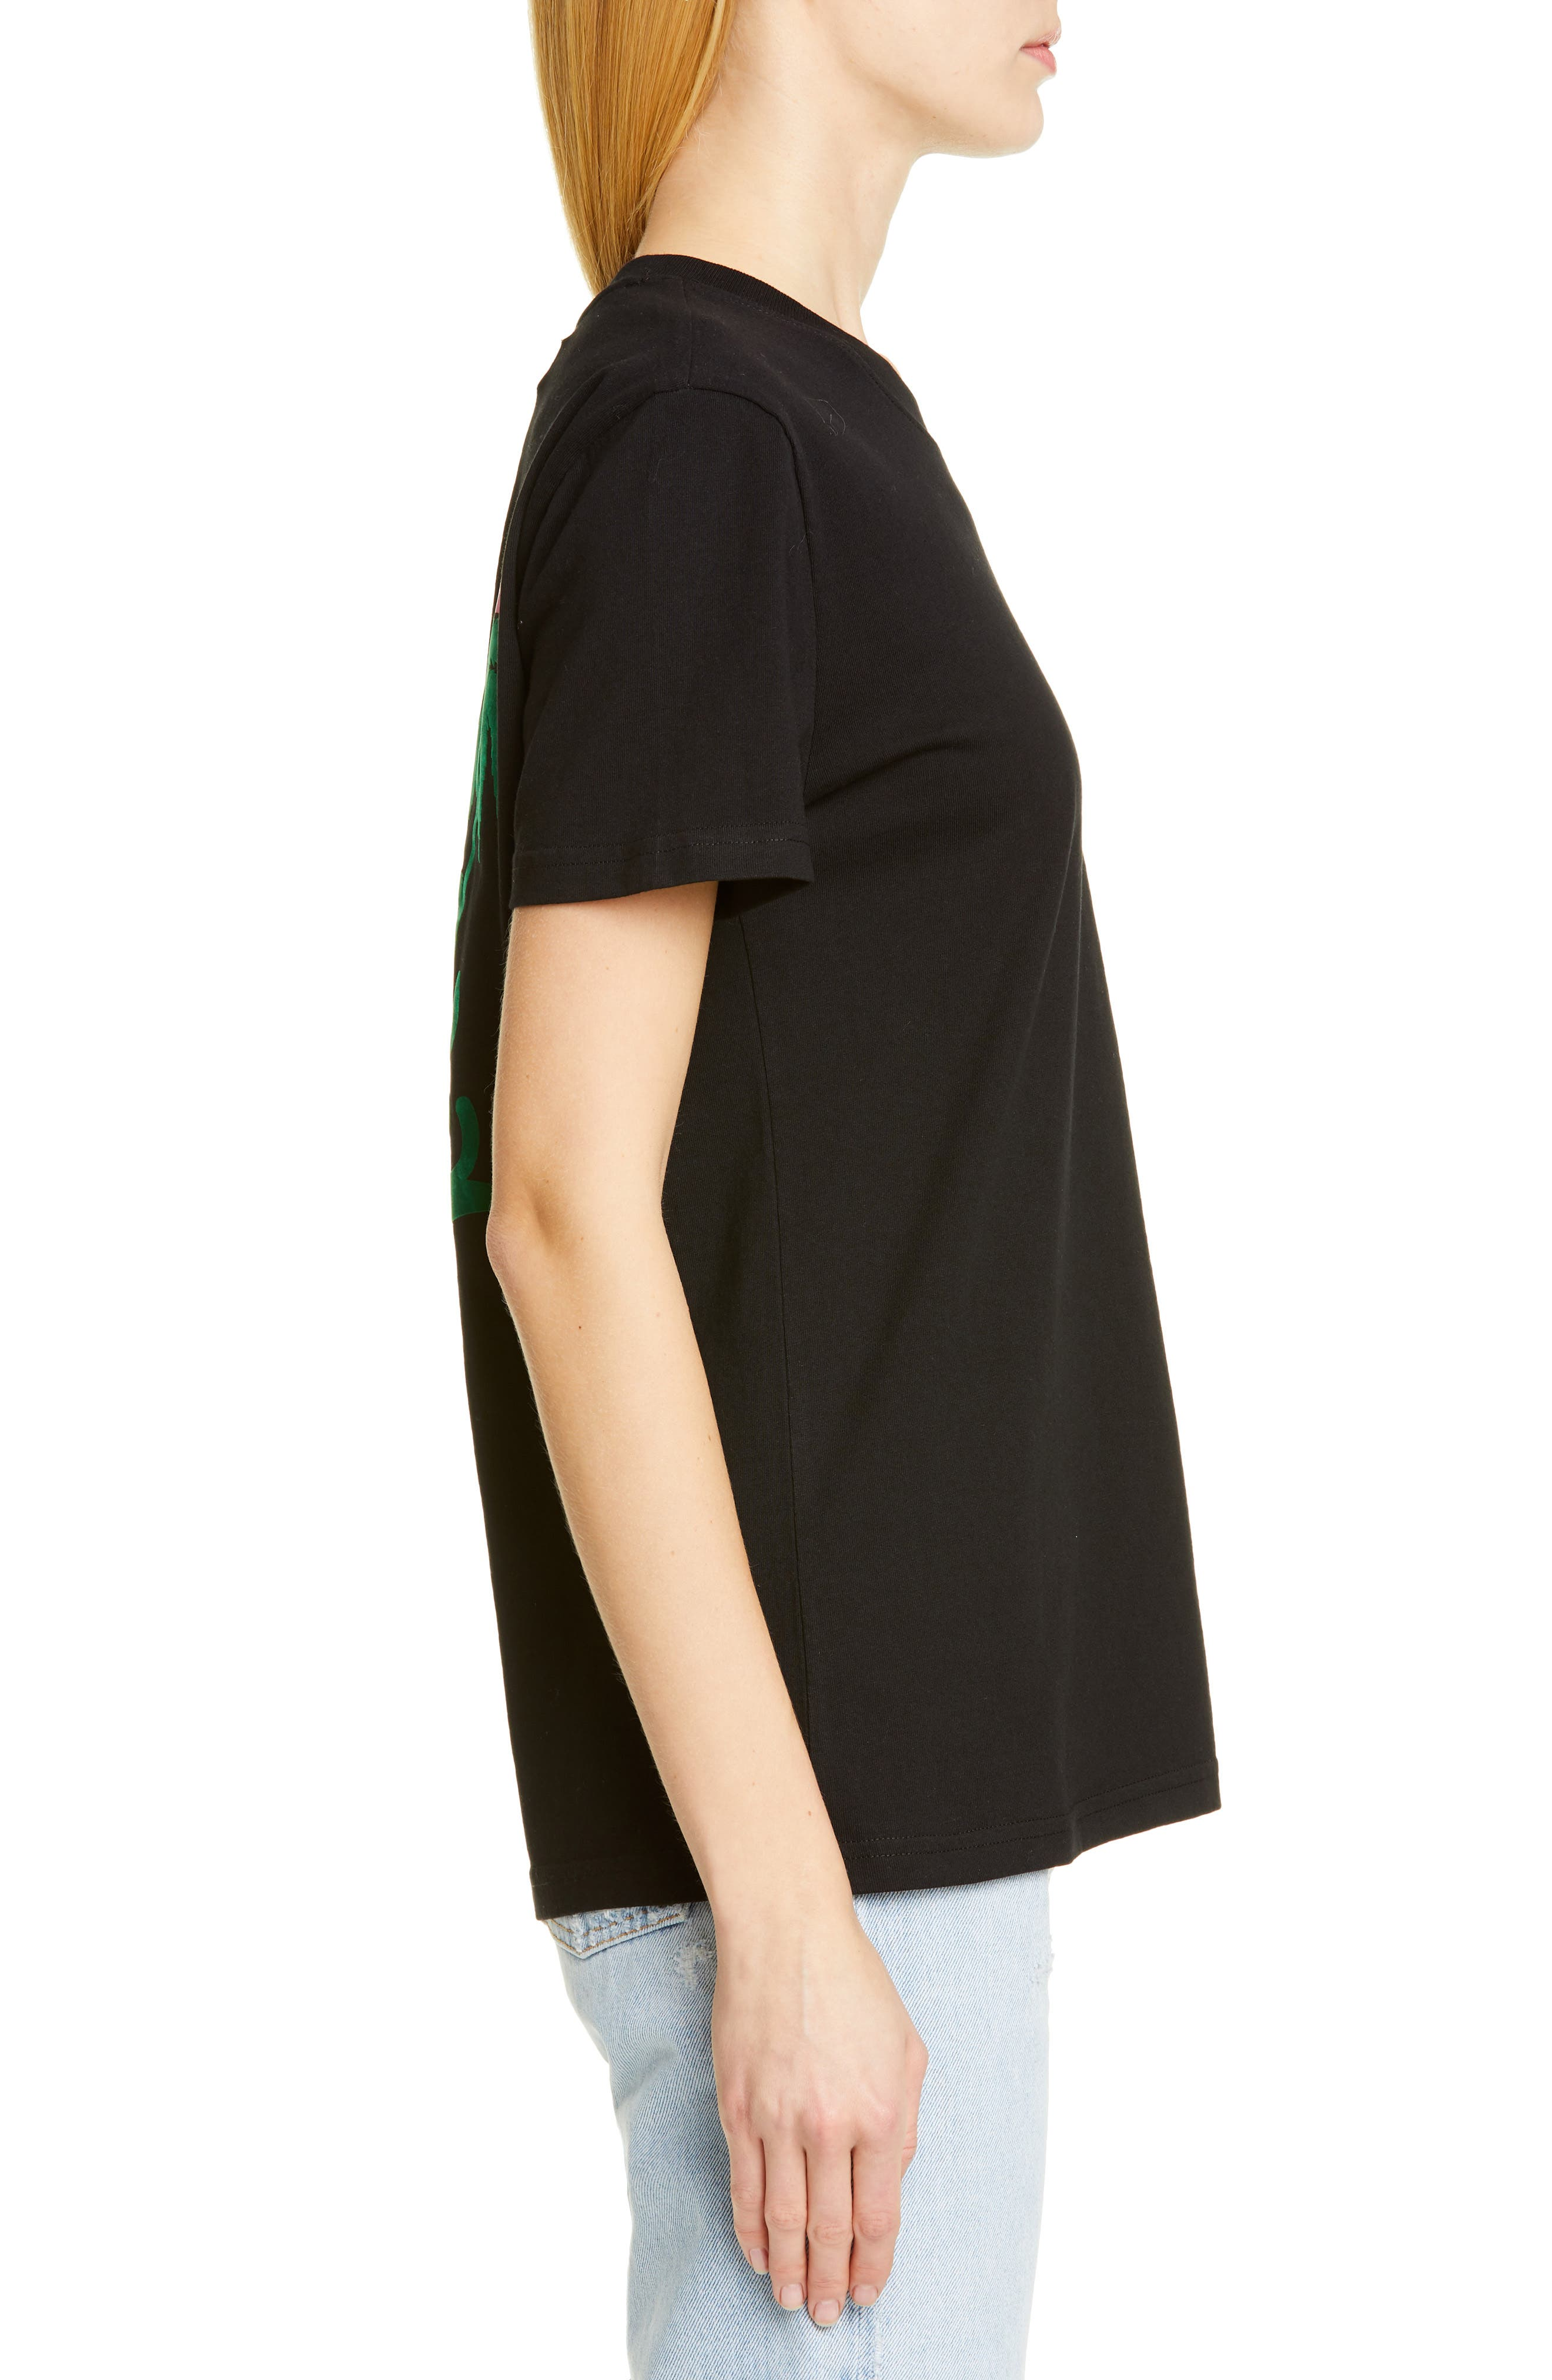 OFF-WHITE, Island Print Tee, Alternate thumbnail 3, color, BLACK GREEN